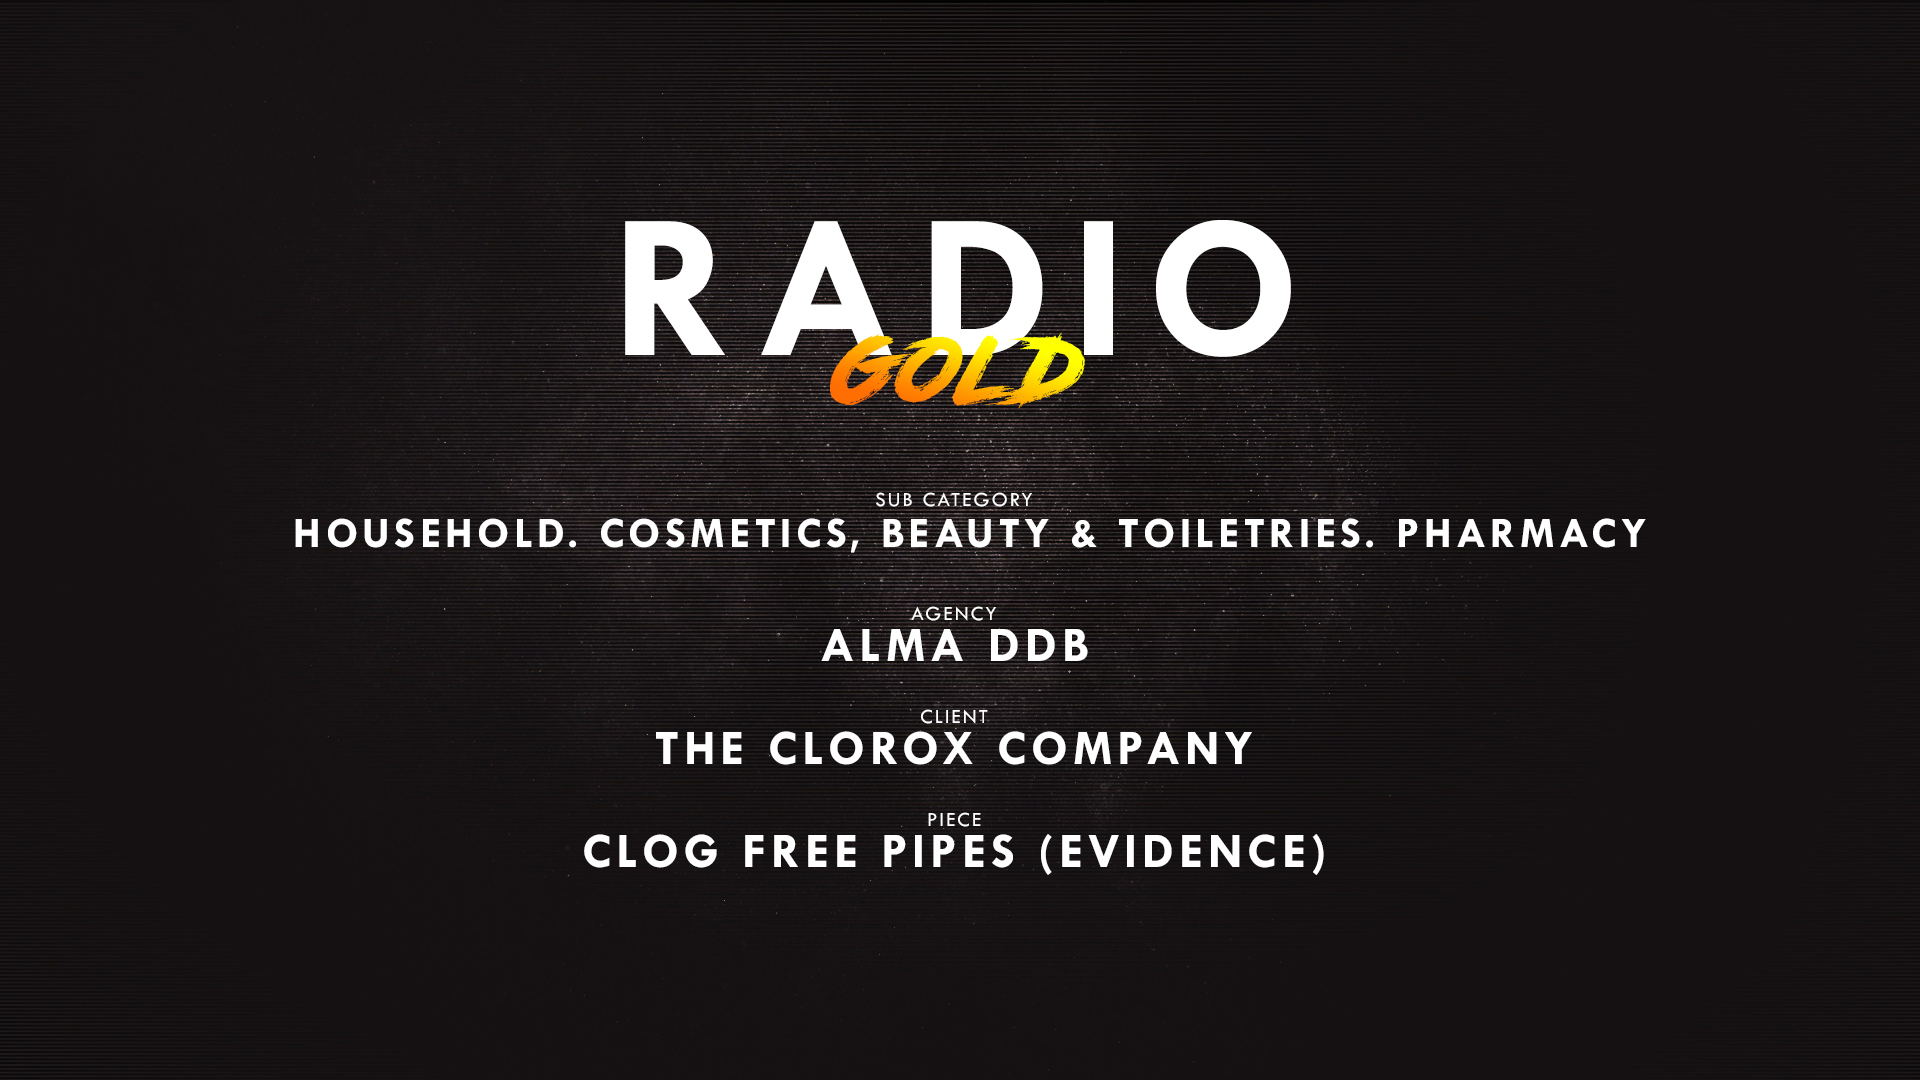 GOLD - CLOG FREE PIPES (EVIDENCE) - 43.jpg